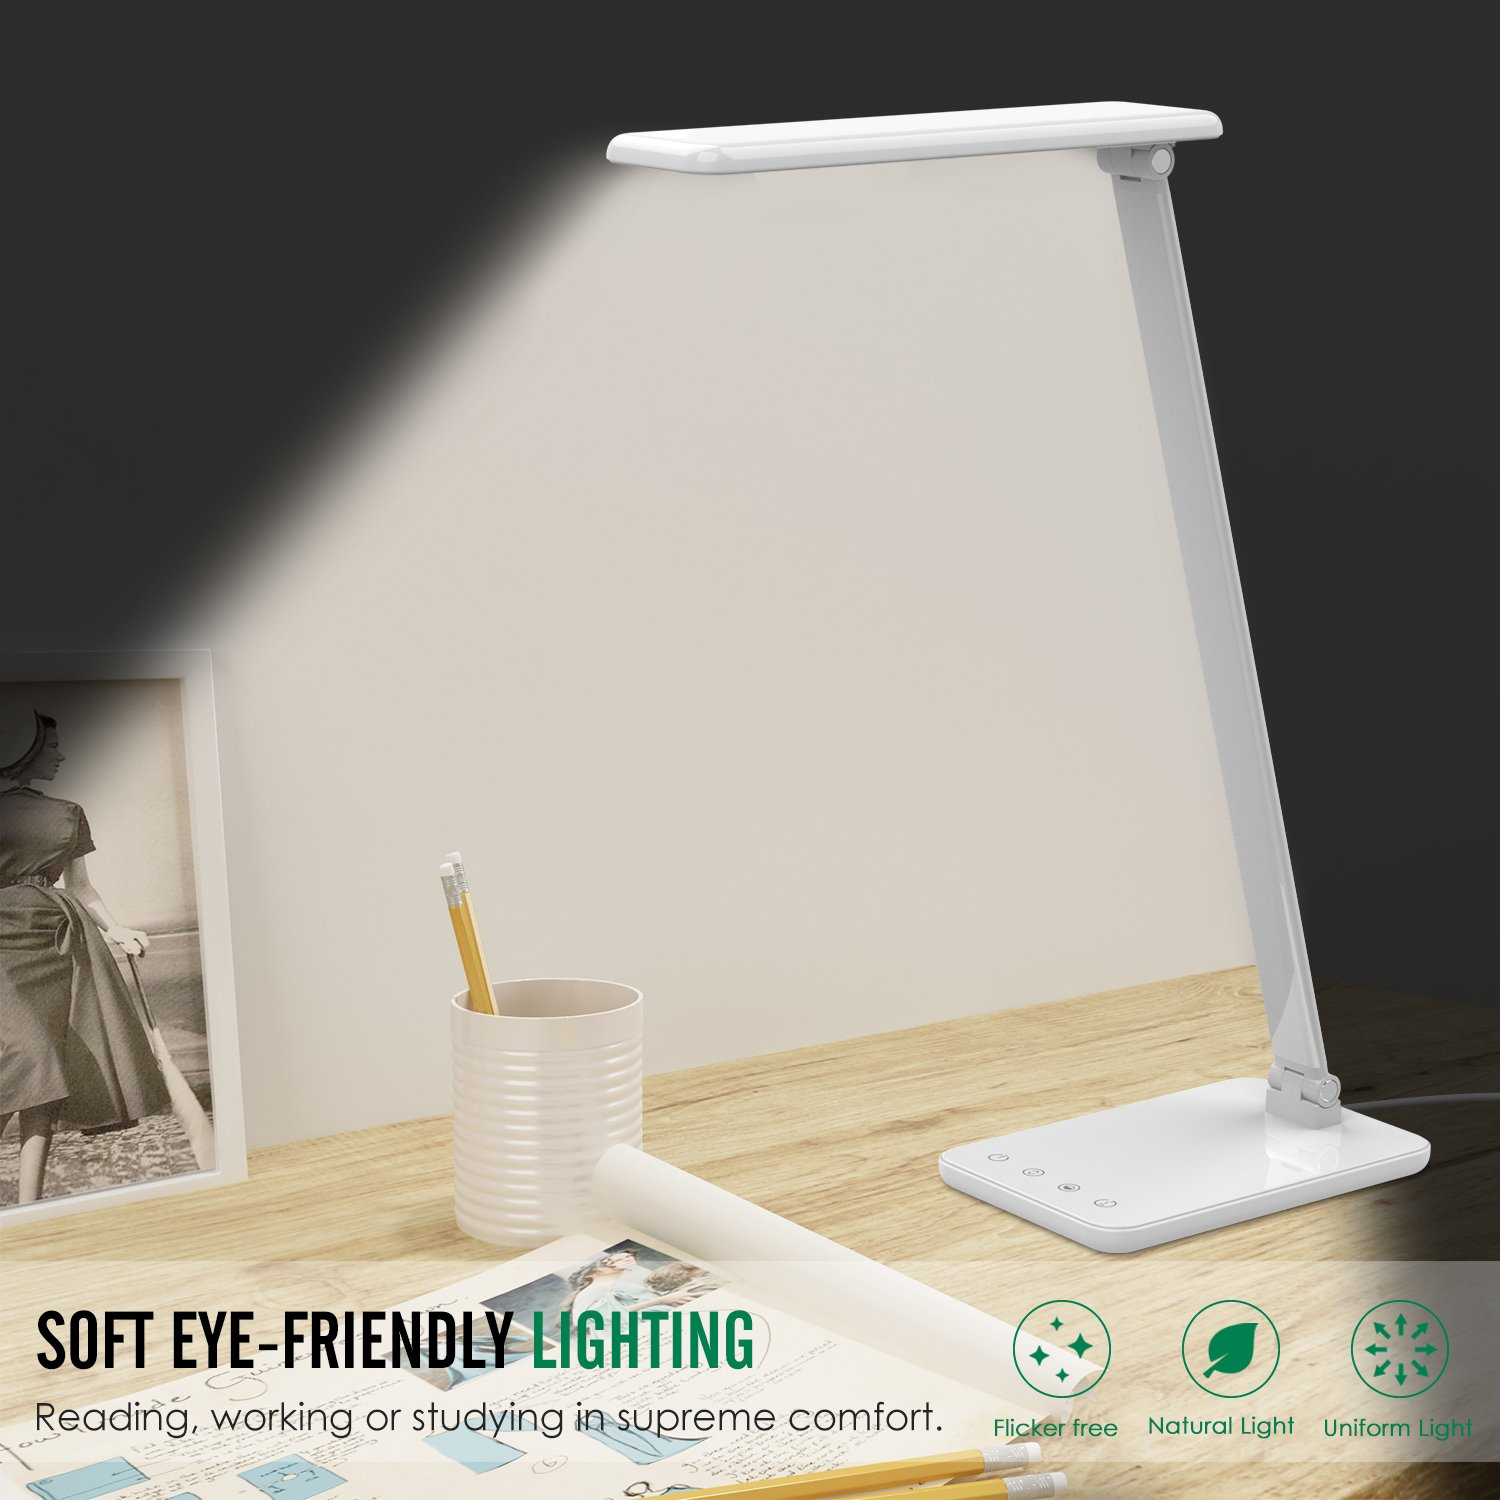 MoKo Dimmable LED Desk Lamp, 8W Touch-Sensitive Control Eye-Caring Working / Reading Table Lamp, Continuously Dimmable Brightness & Color Temperature, 1-Hour Auto Timer, Adjustable Arm & Head - WHITE by MoKo (Image #6)